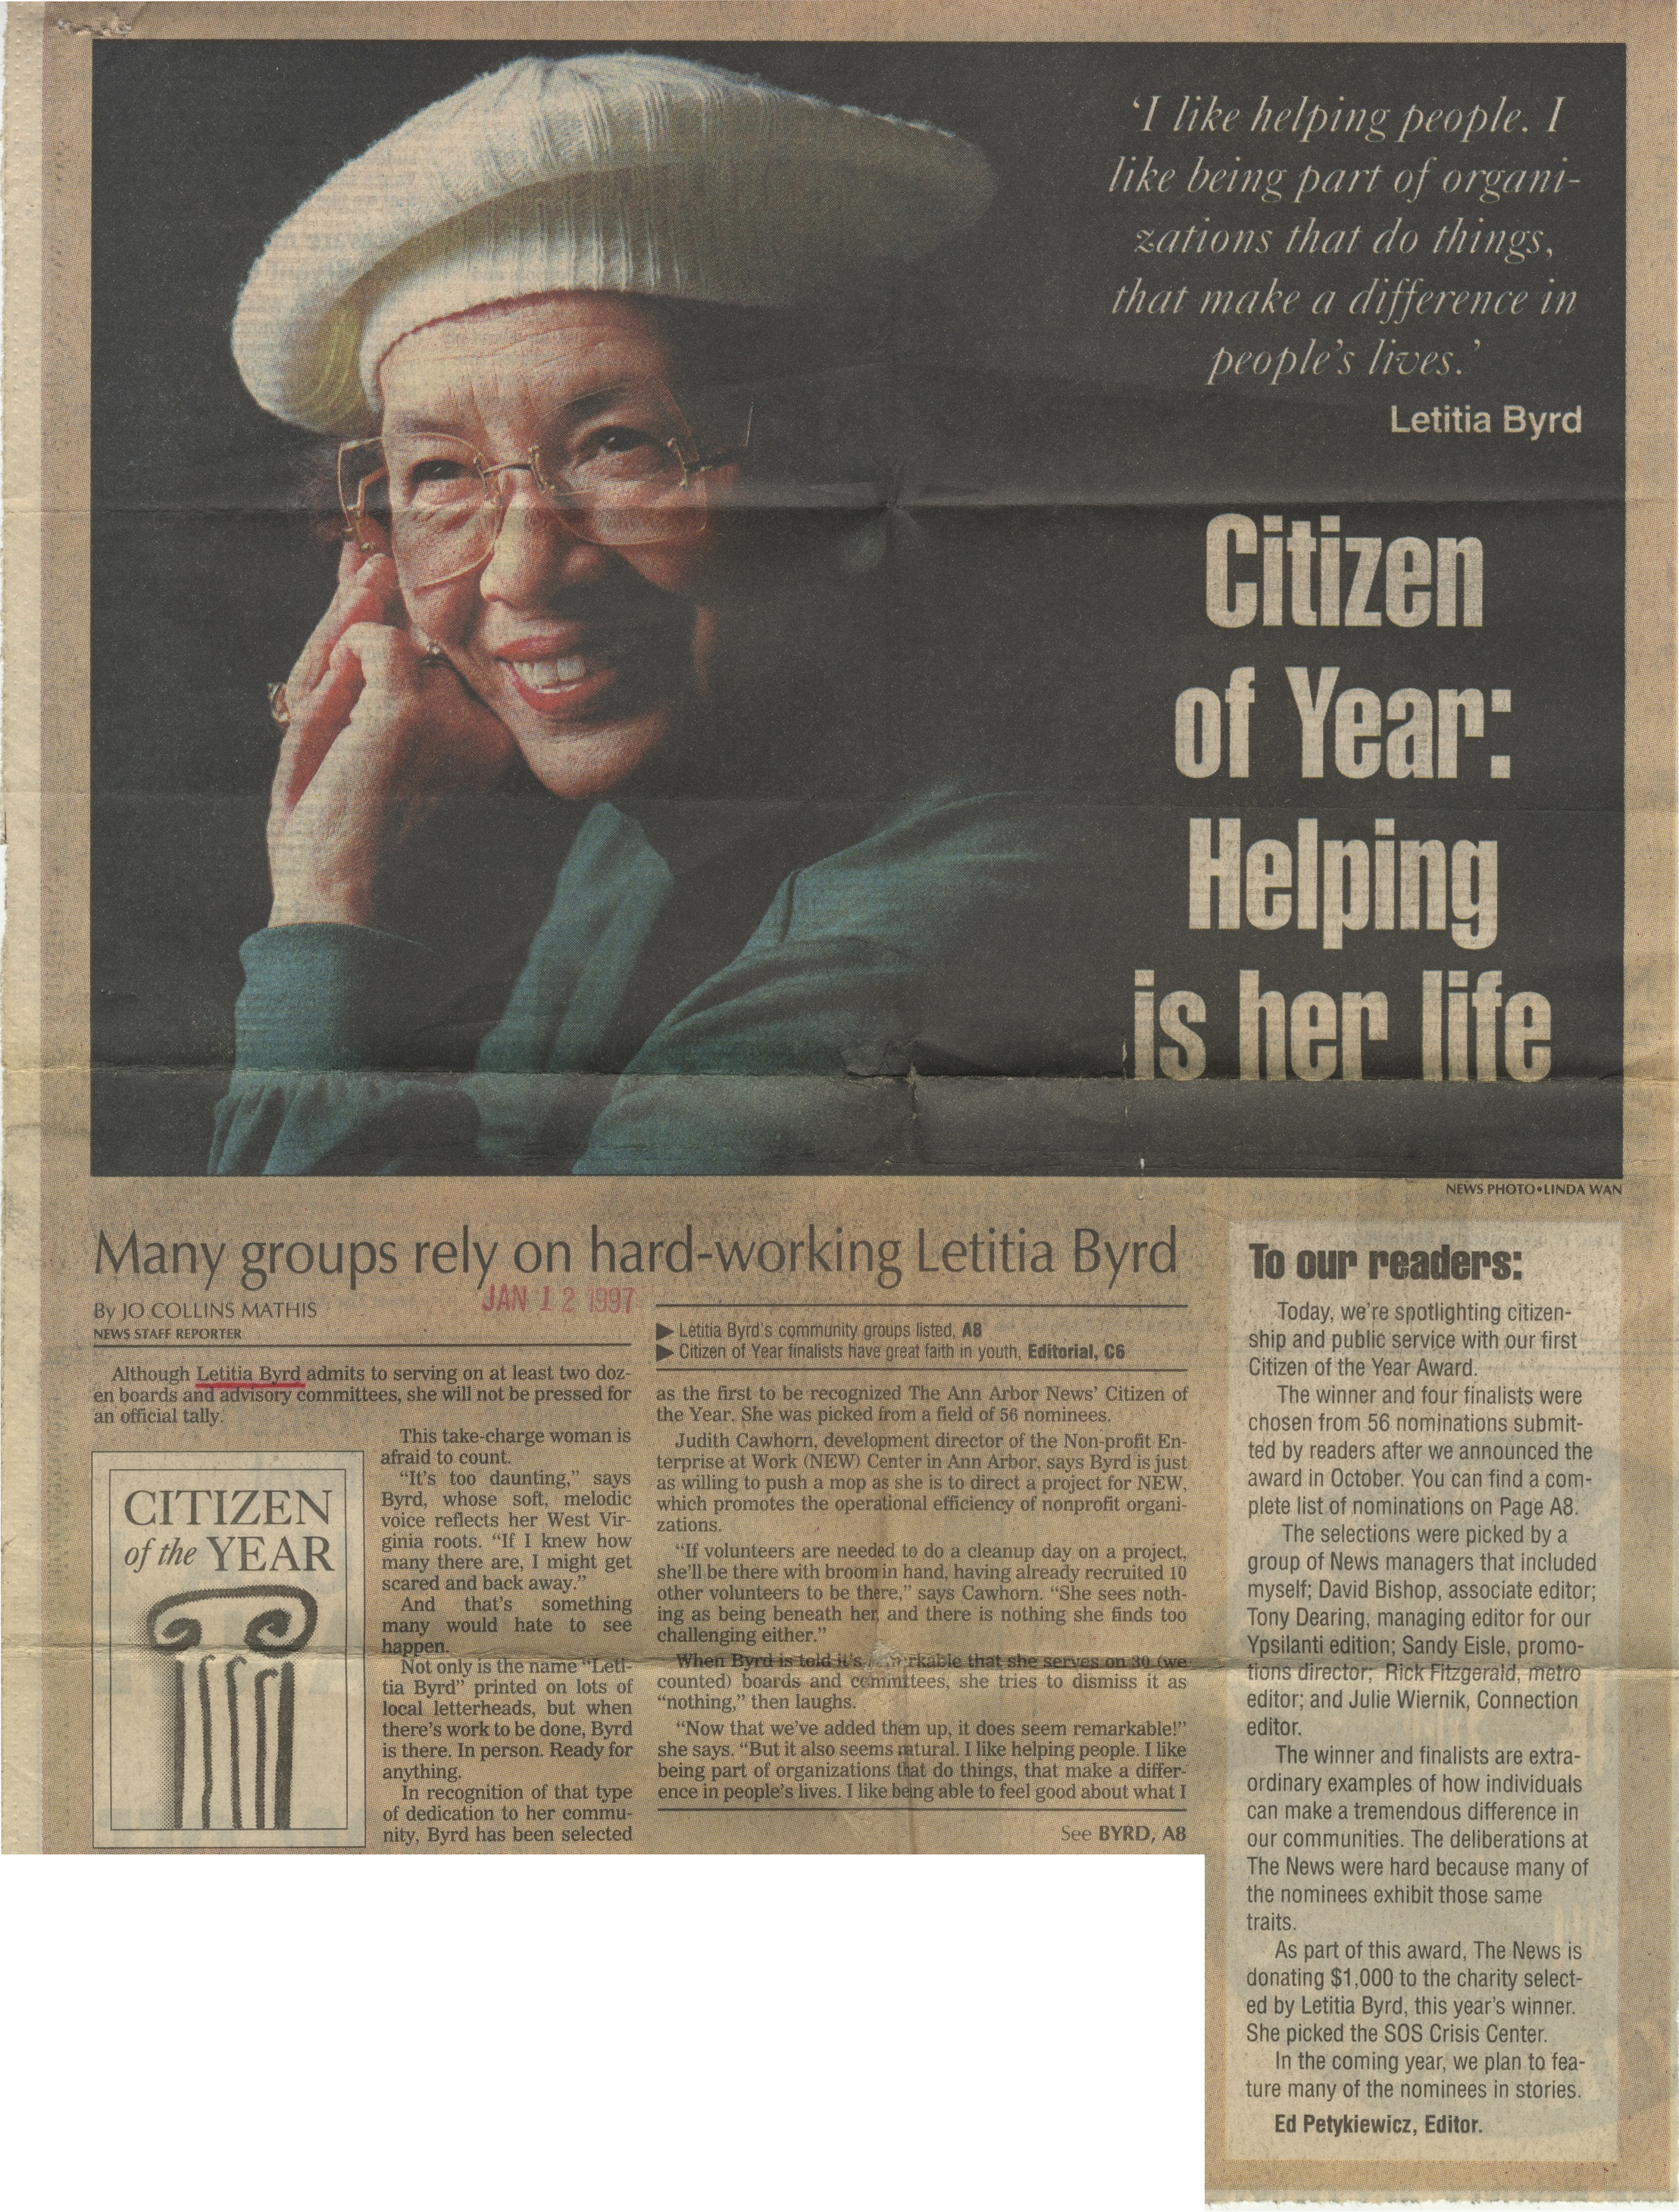 Citizen Of The Year: Helping Is Her Life image